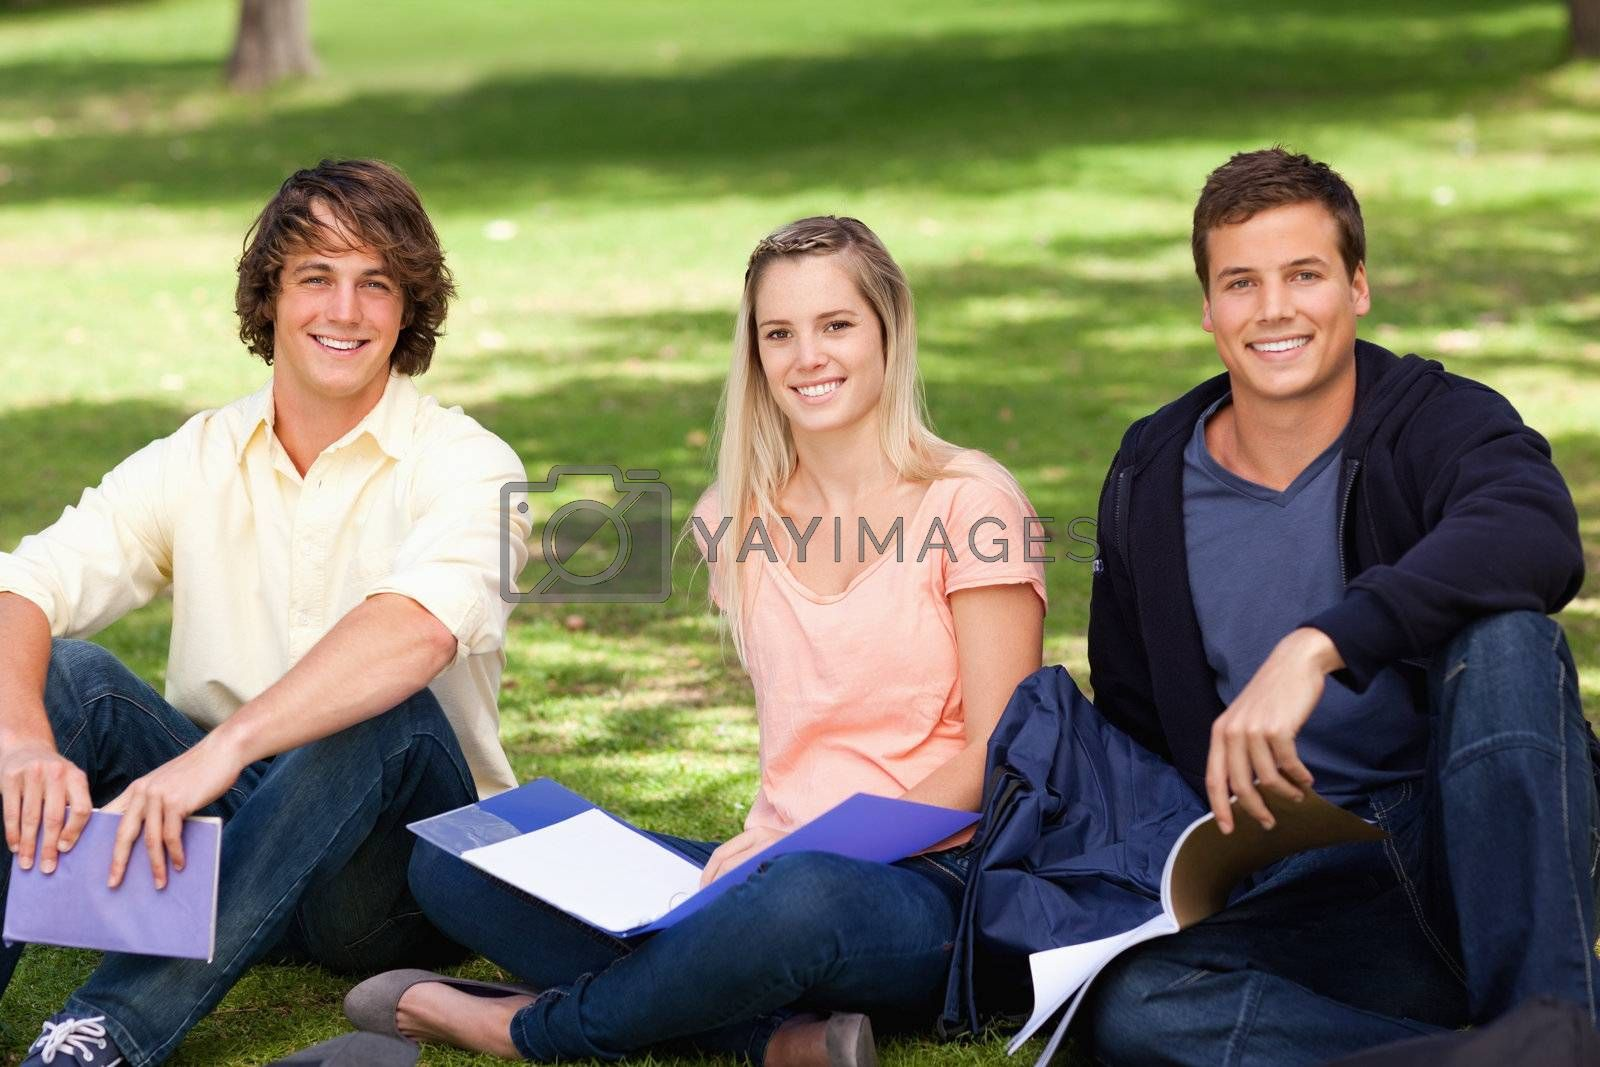 Portrait of three students in a park studying